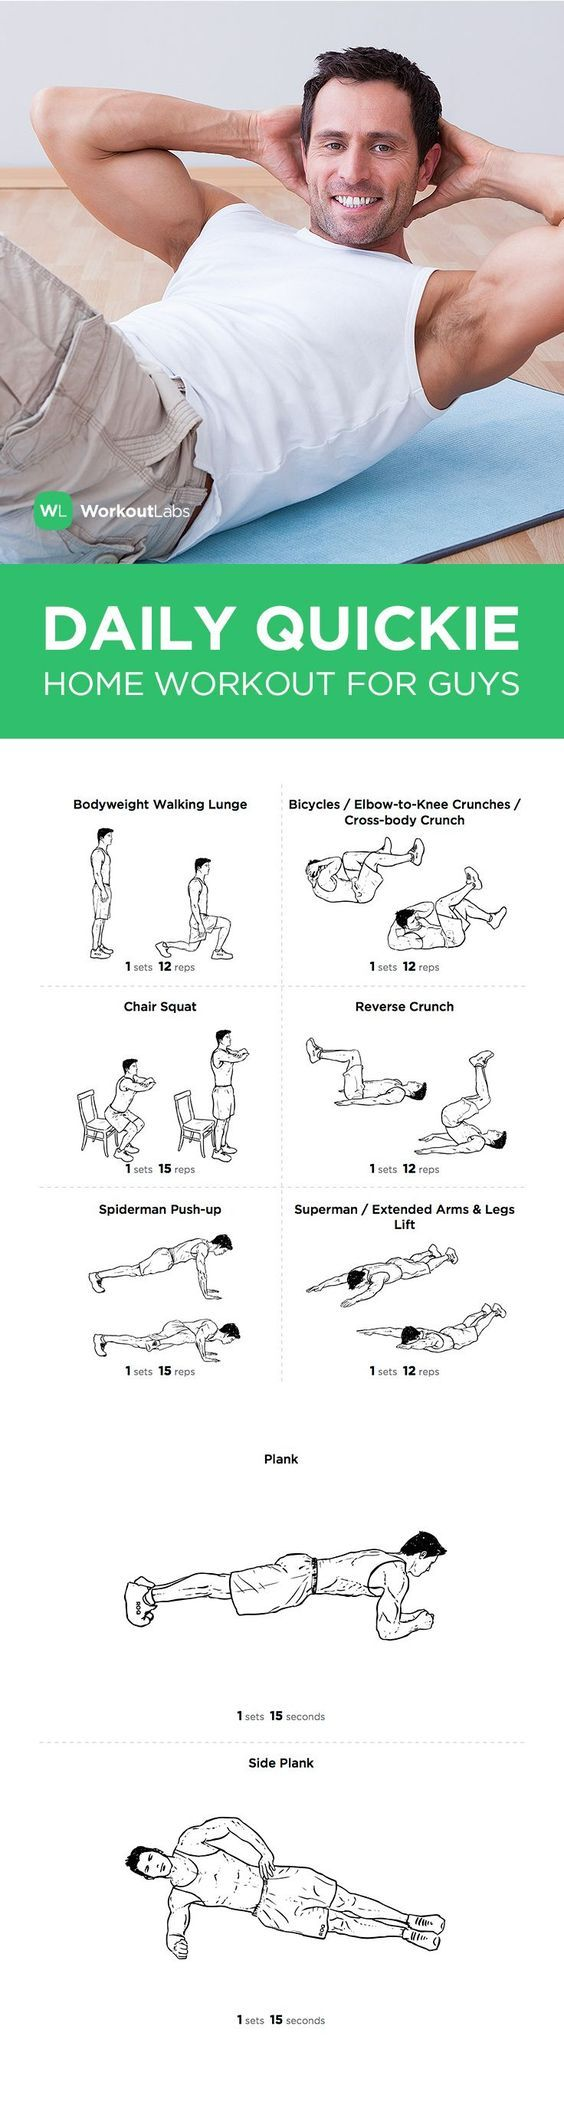 Visit http://WorkoutLabs.com/workout-plans/daily-quickie-essential-at-home-workout-for-guys/ for a FREE PDF of this Daily Quickie Essential at Home Workout for Guys Remarkable stories. Daily